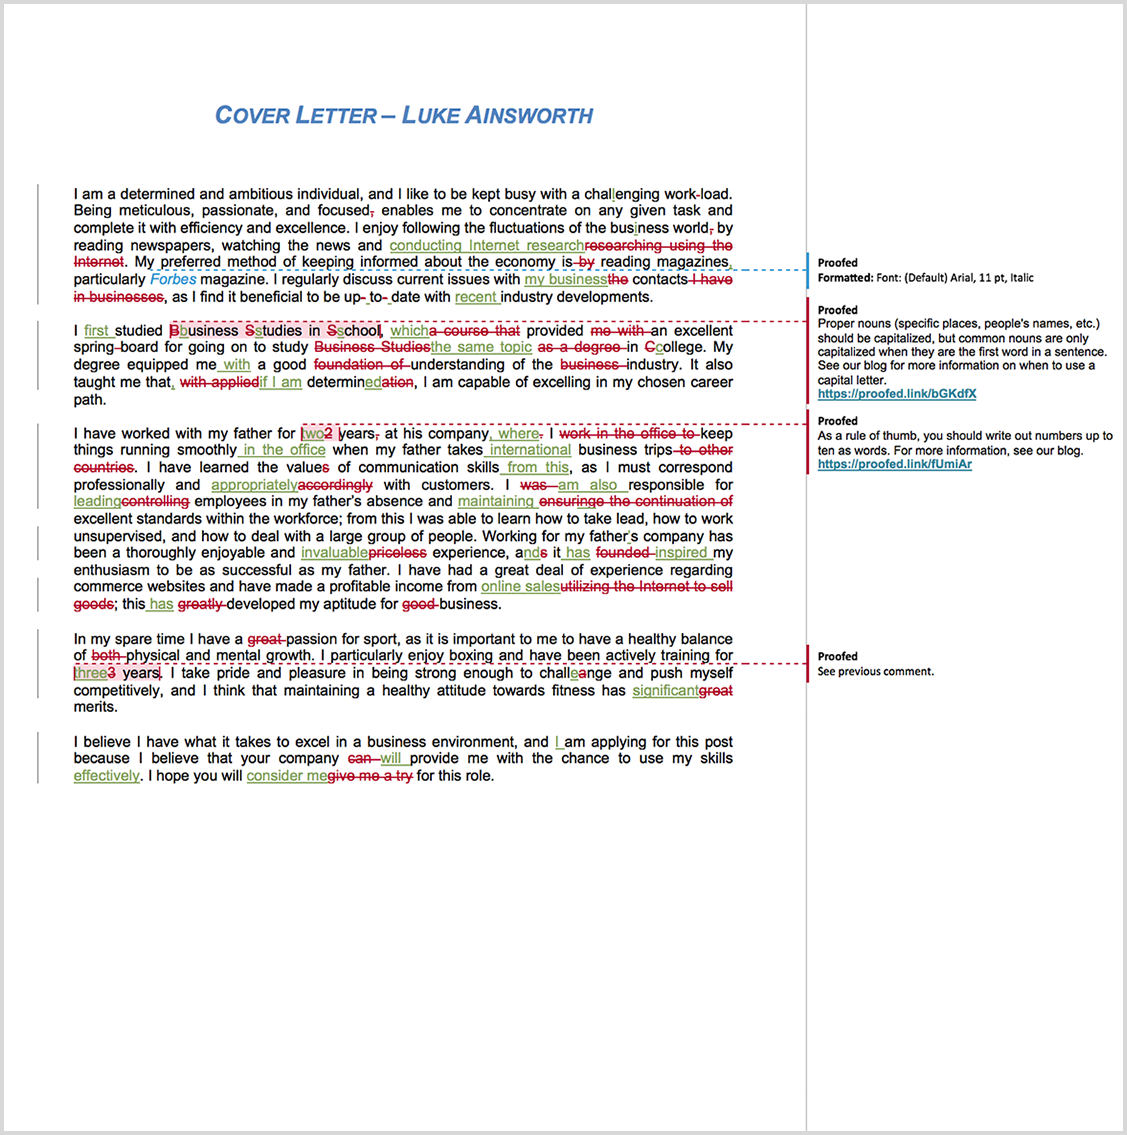 Cover Letter proofreading example before editing